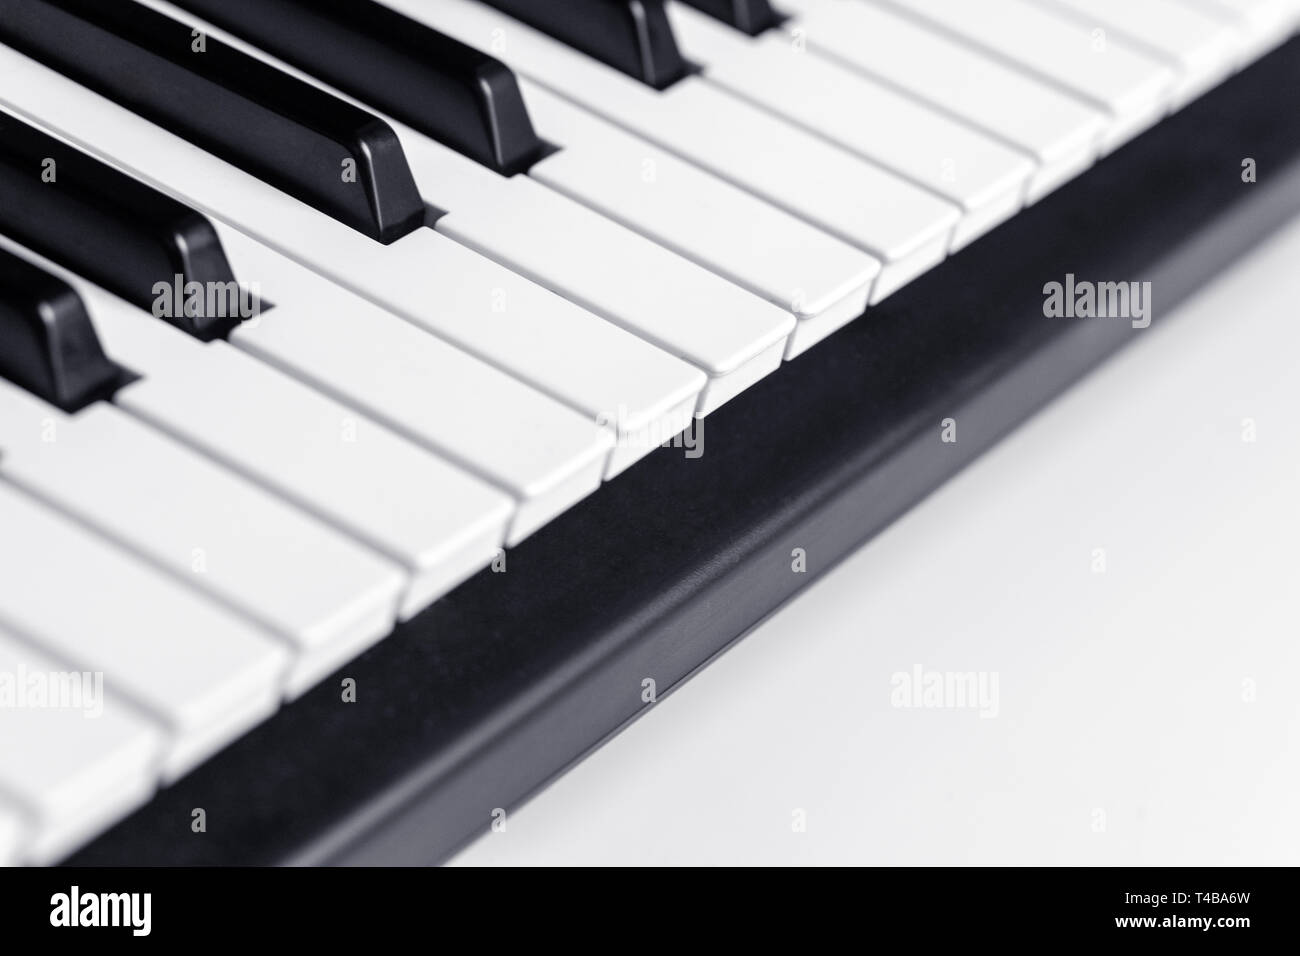 Piano keys with copy space, isolated. Piano or synthesizer keyboard. Classical music instrument for playing or composing romantic music. - Stock Image